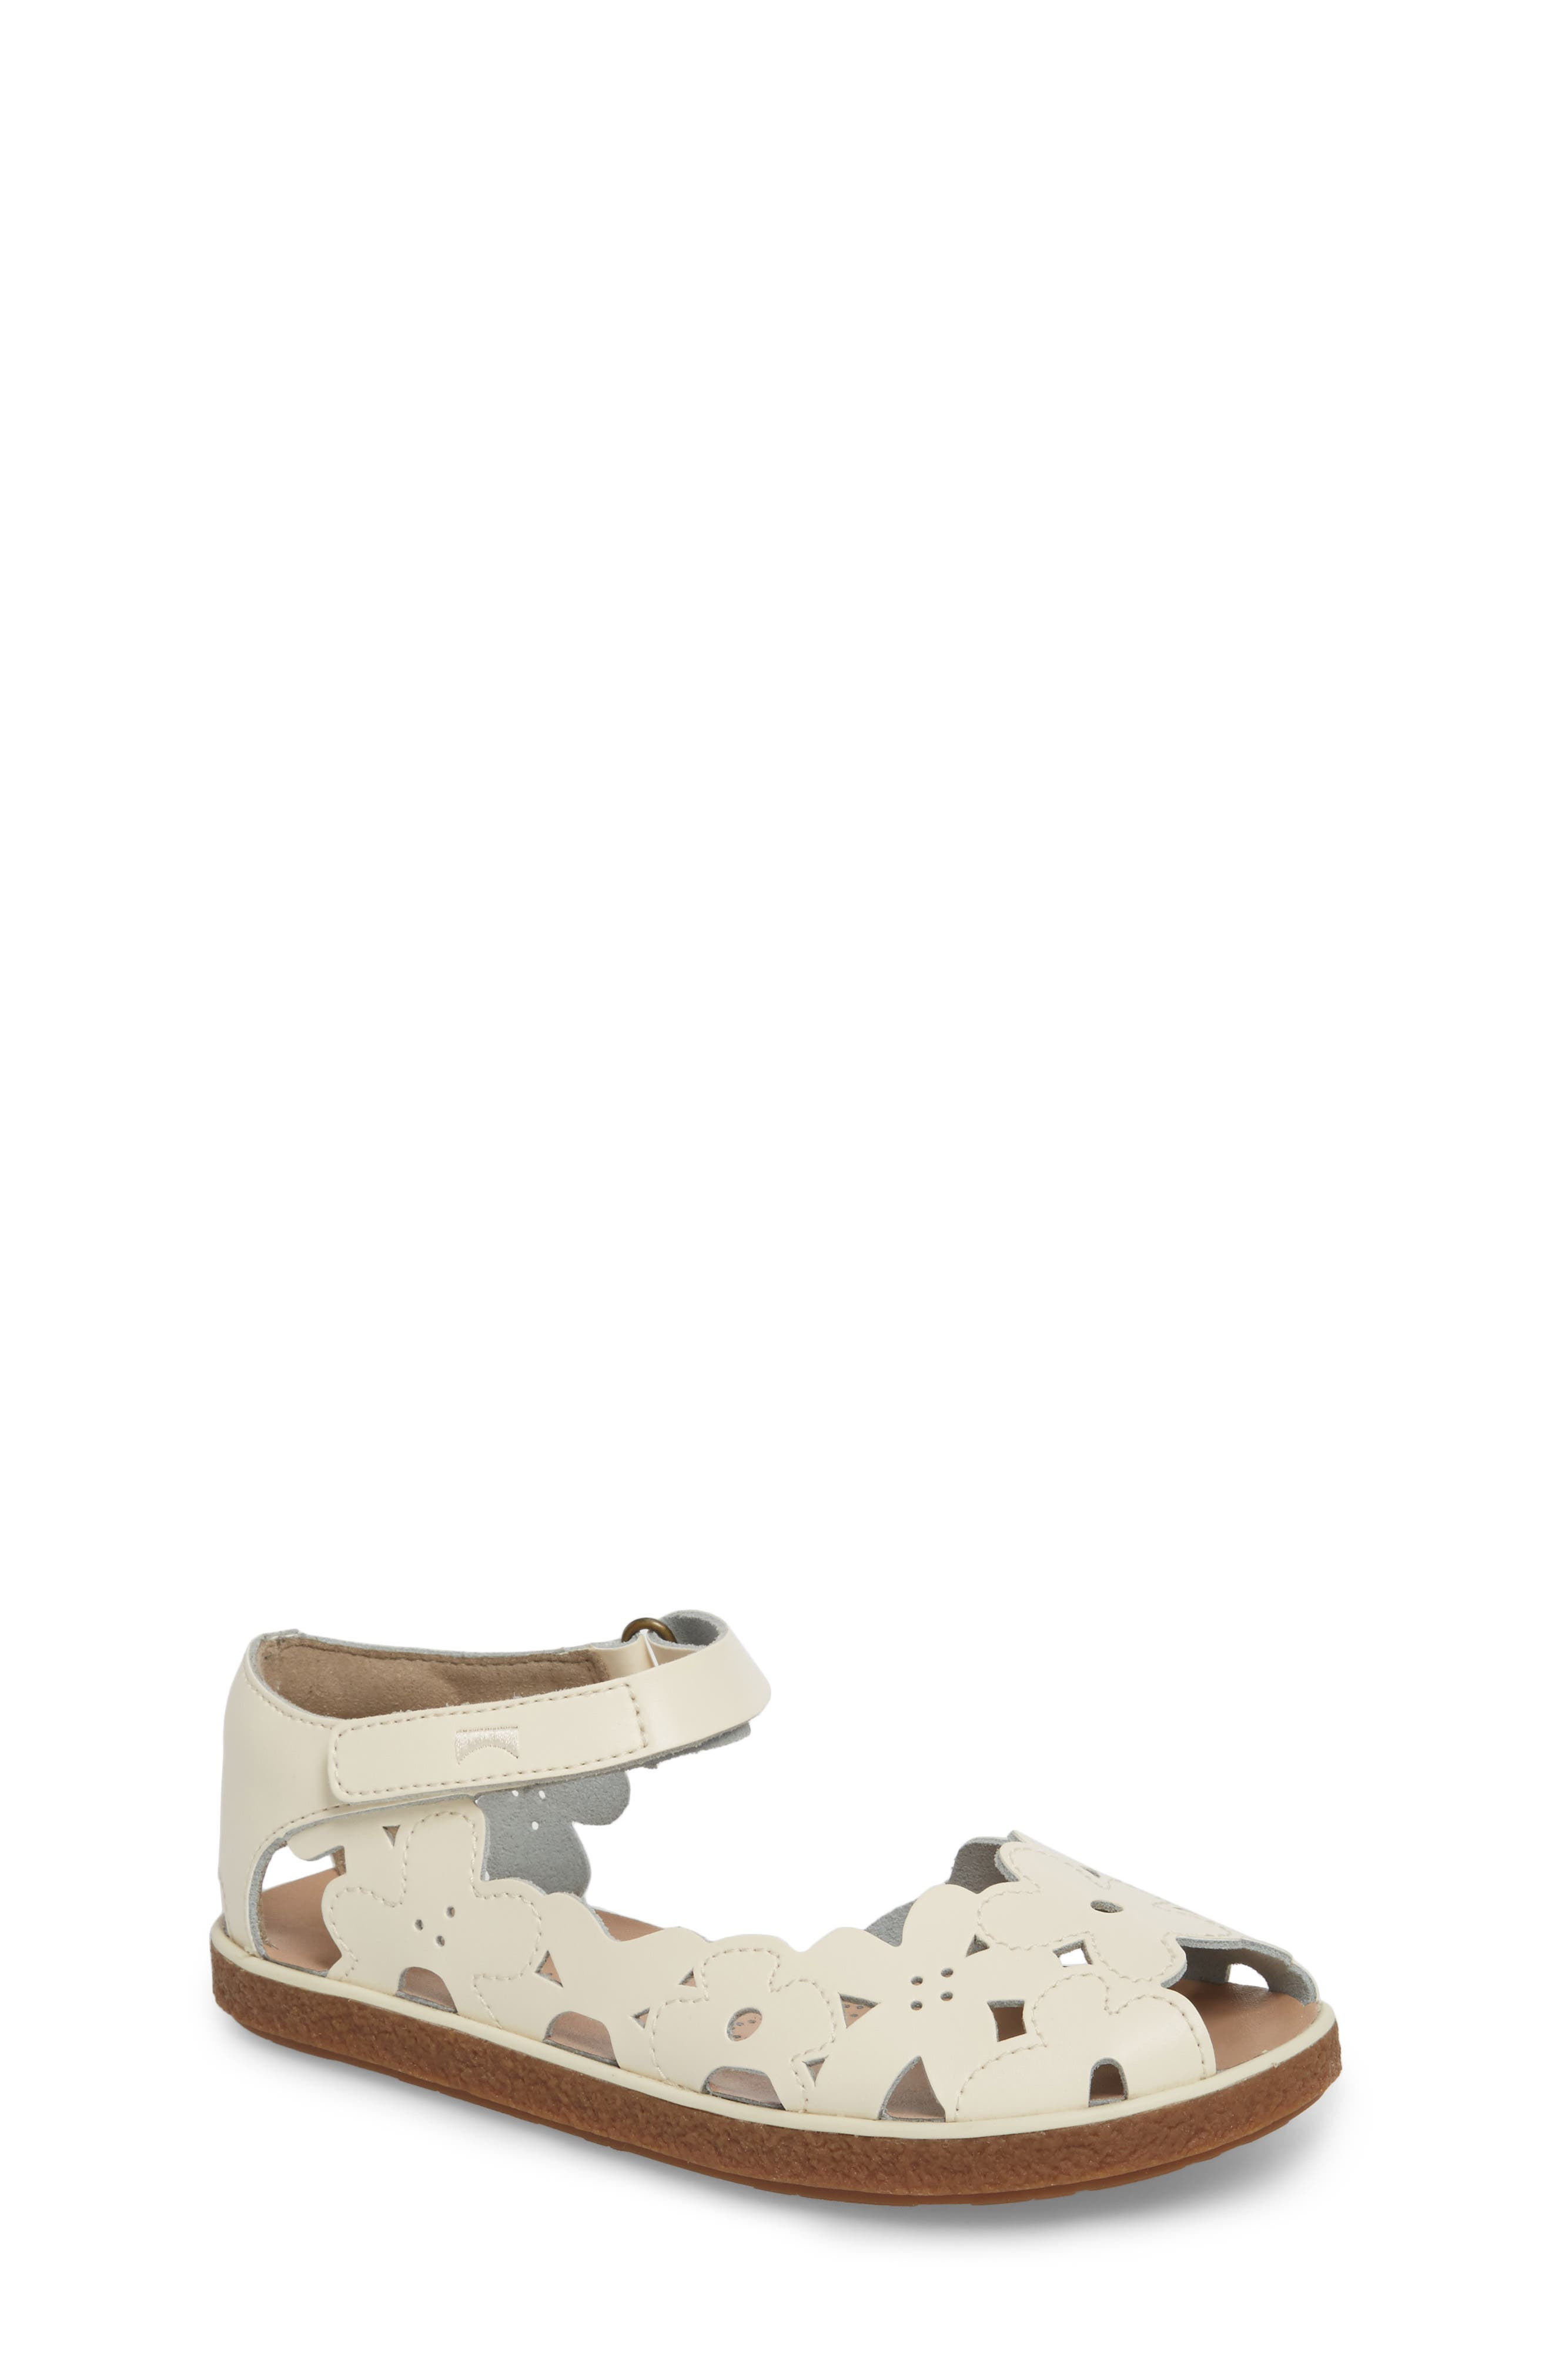 Twins Perforated Sandal,                         Main,                         color, WHITE